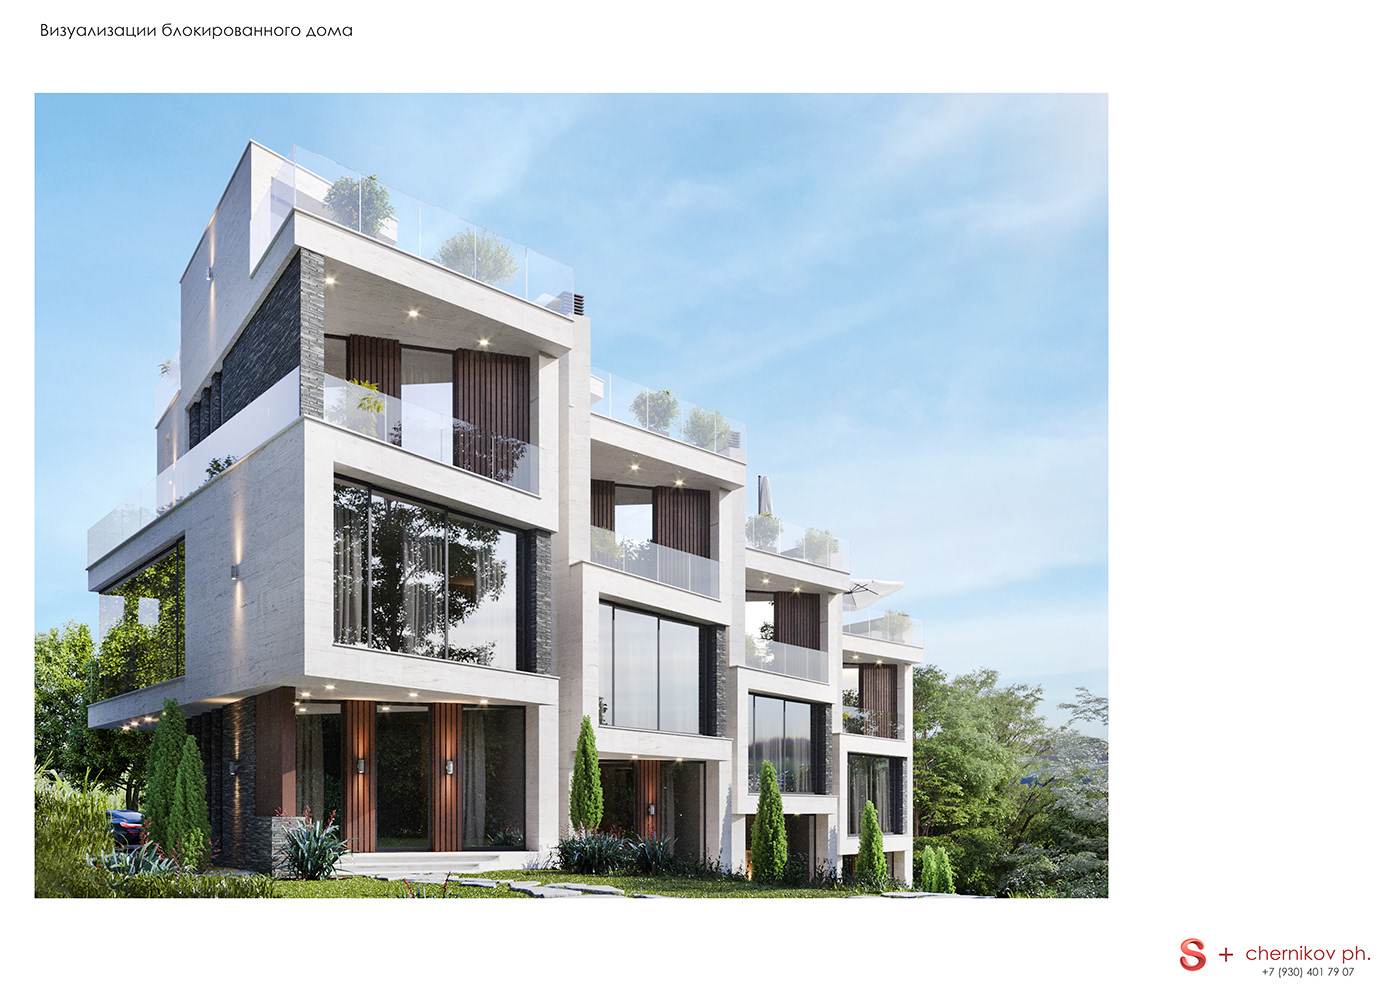 Townhouse project near seaside with panoramic view